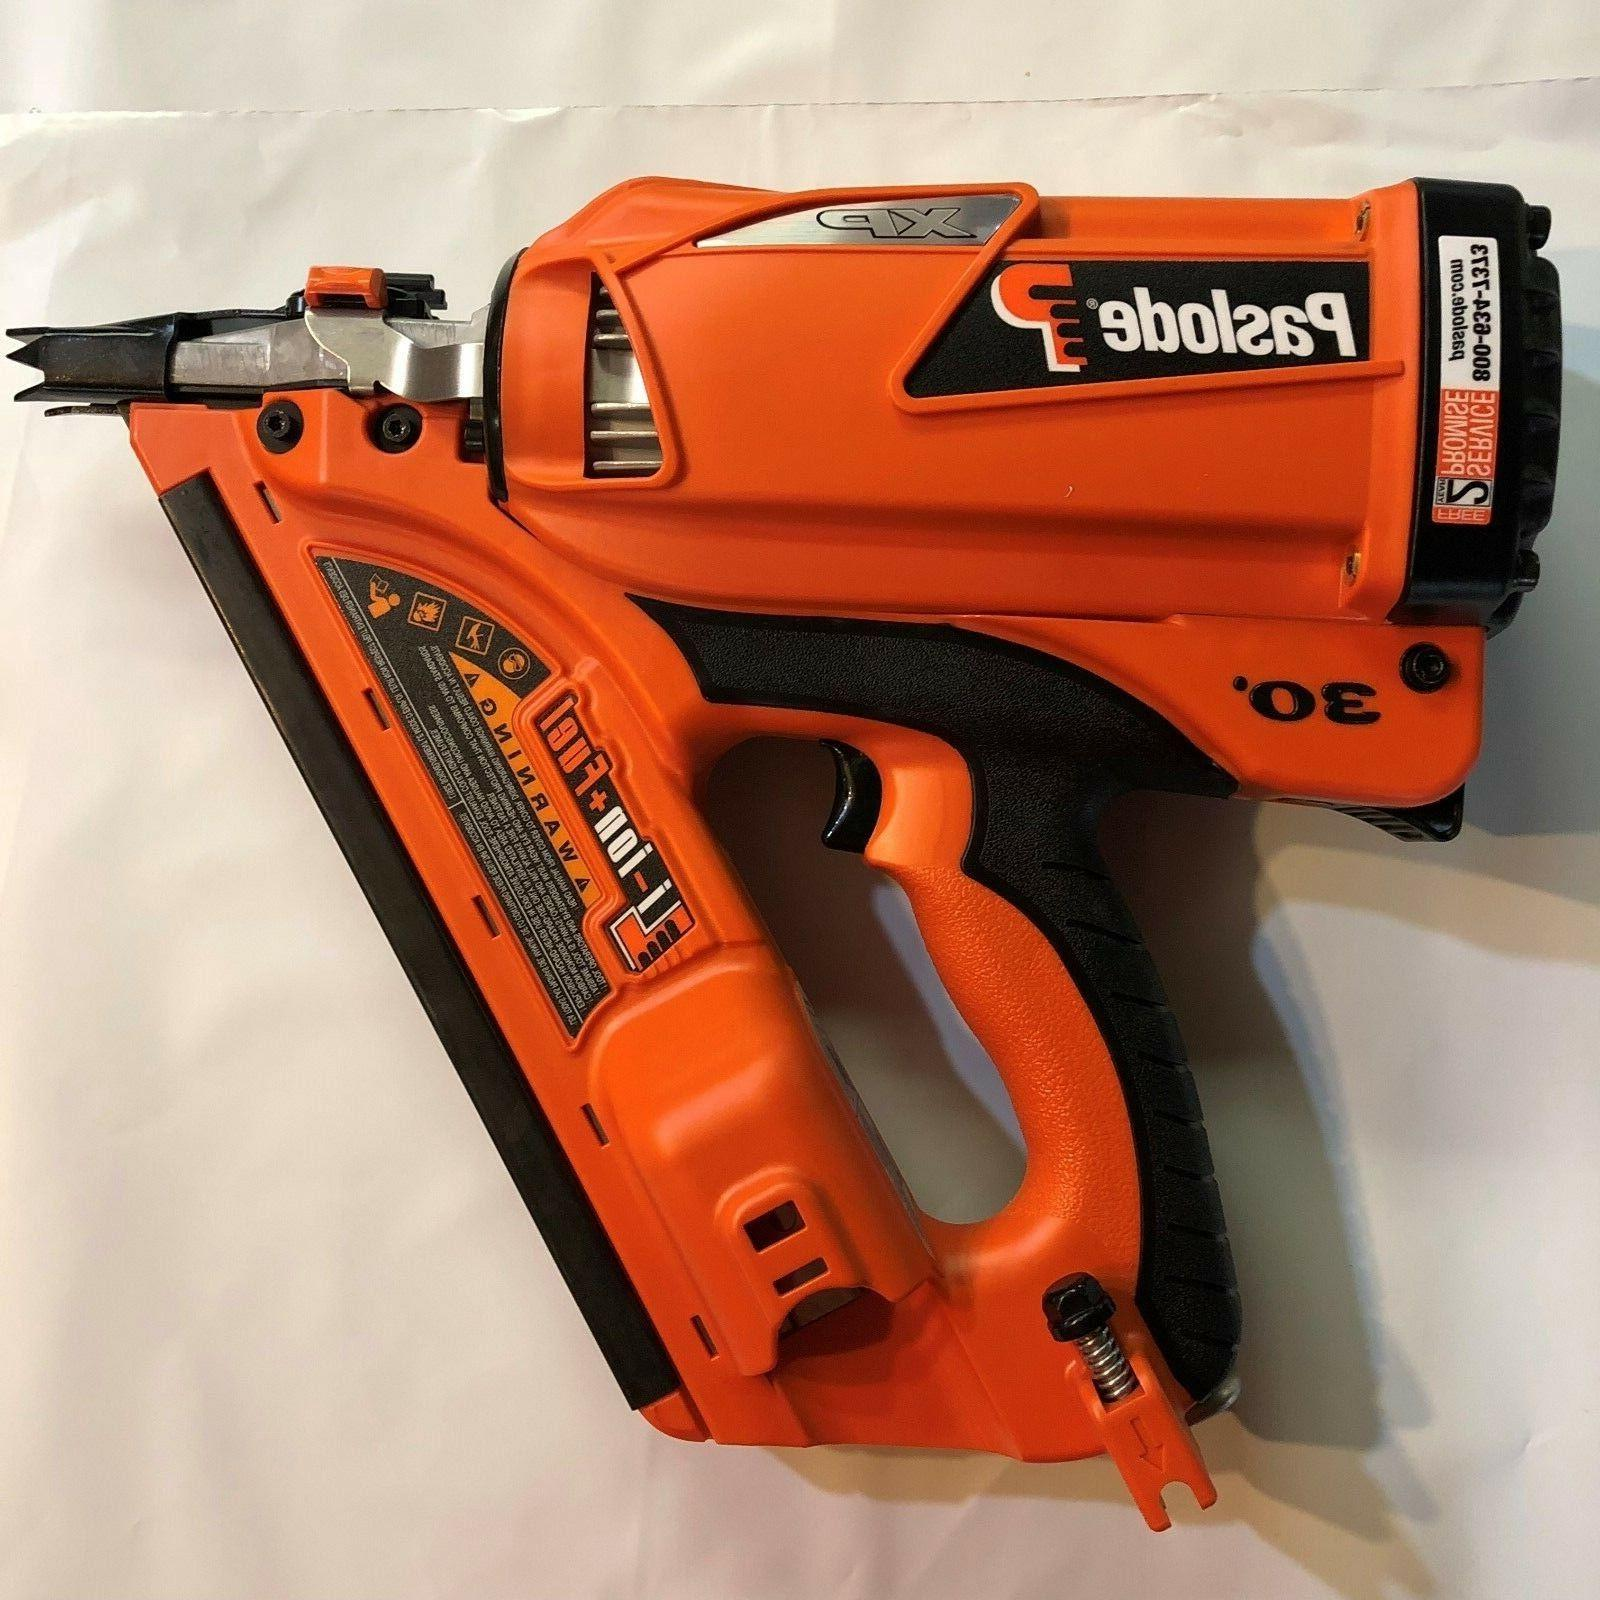 Paslode Impulse Framing Nailer 30 Degree bare